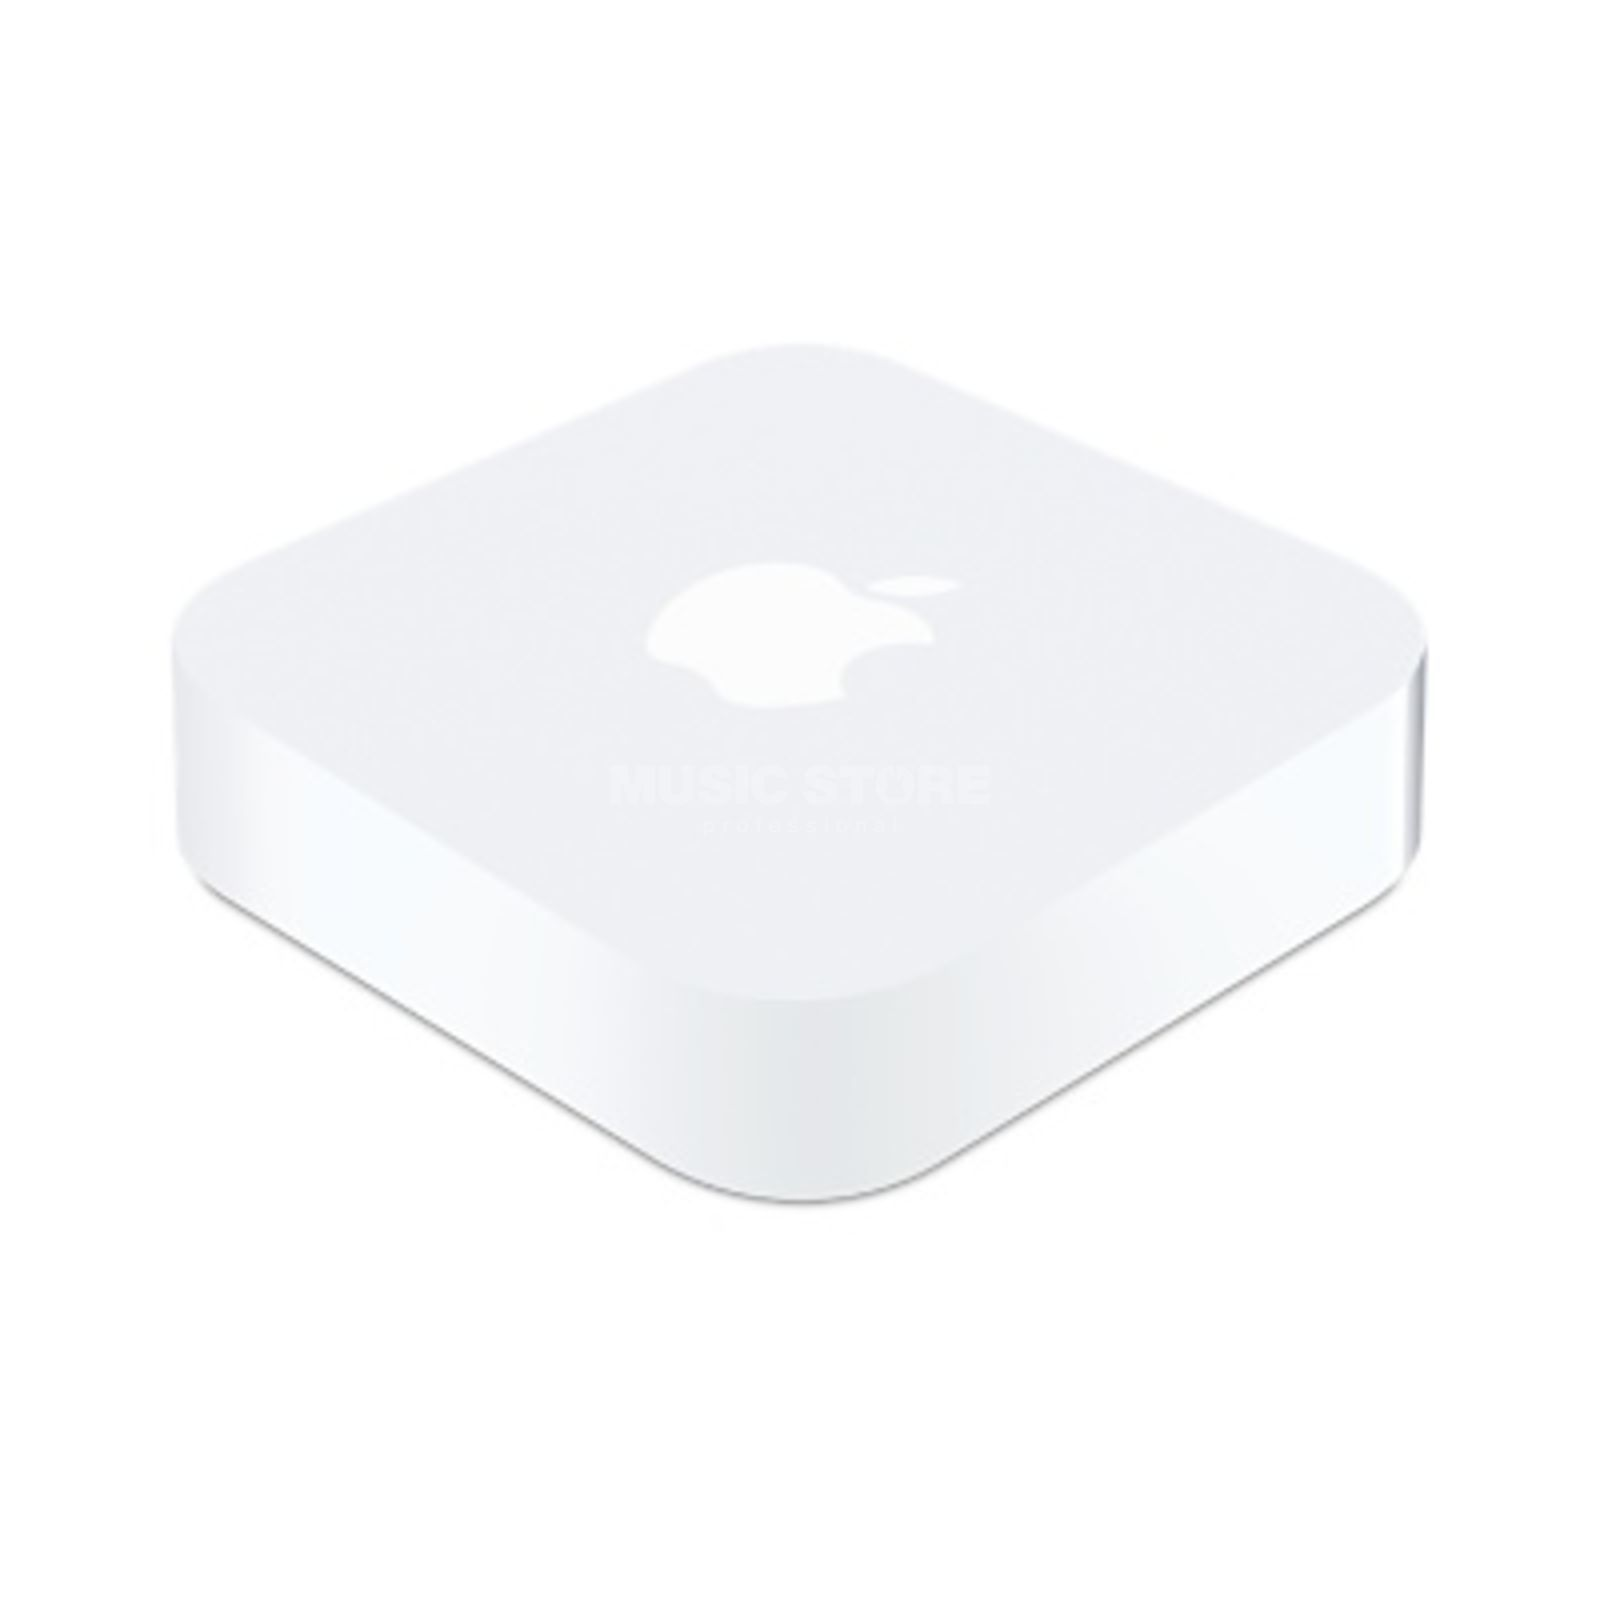 Apple Airport Express Basisstation  Produktbild